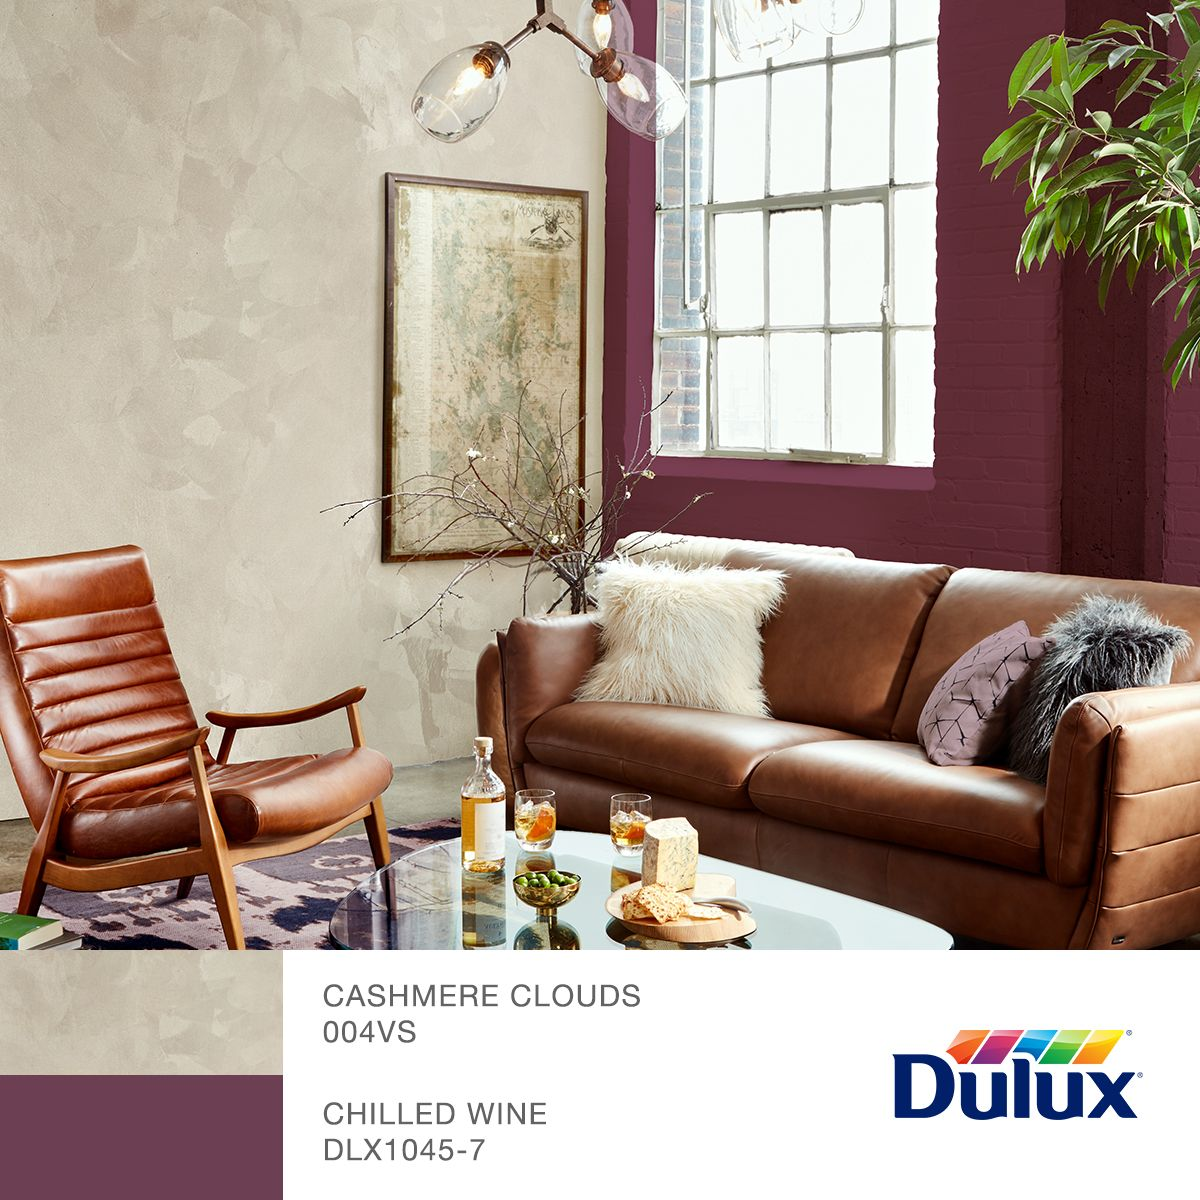 How To Use 2019 Dulux Trend Colours In Your Home Start With One Of The Lighter Neutrals In The Collection Like Hourglass Or Trending Decor Home Decor Decor